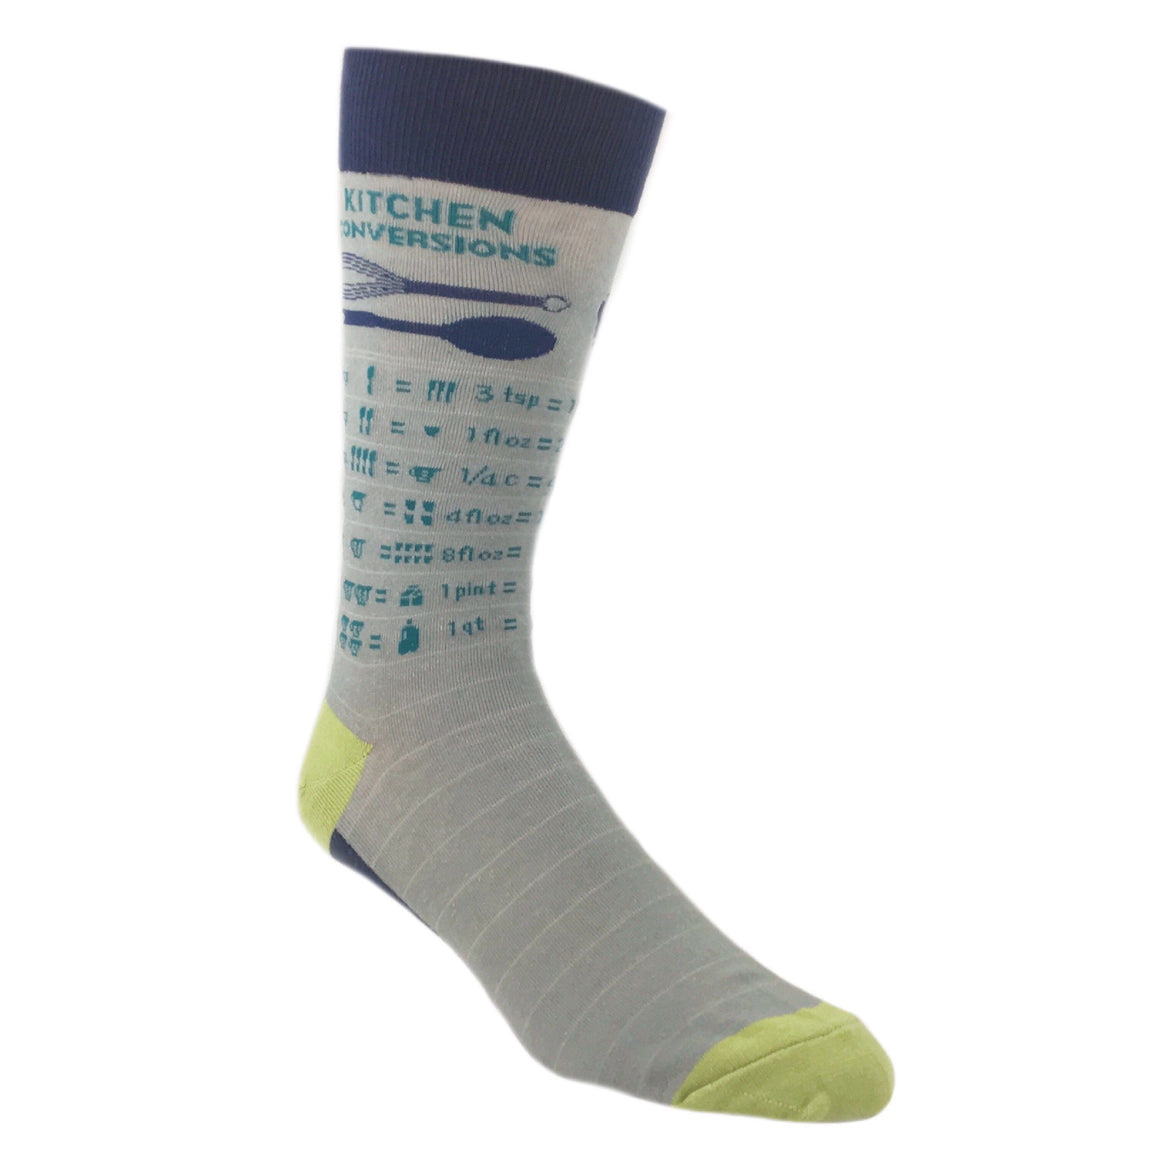 Kitchen Measurement Conversion Socks by Foot Traffic